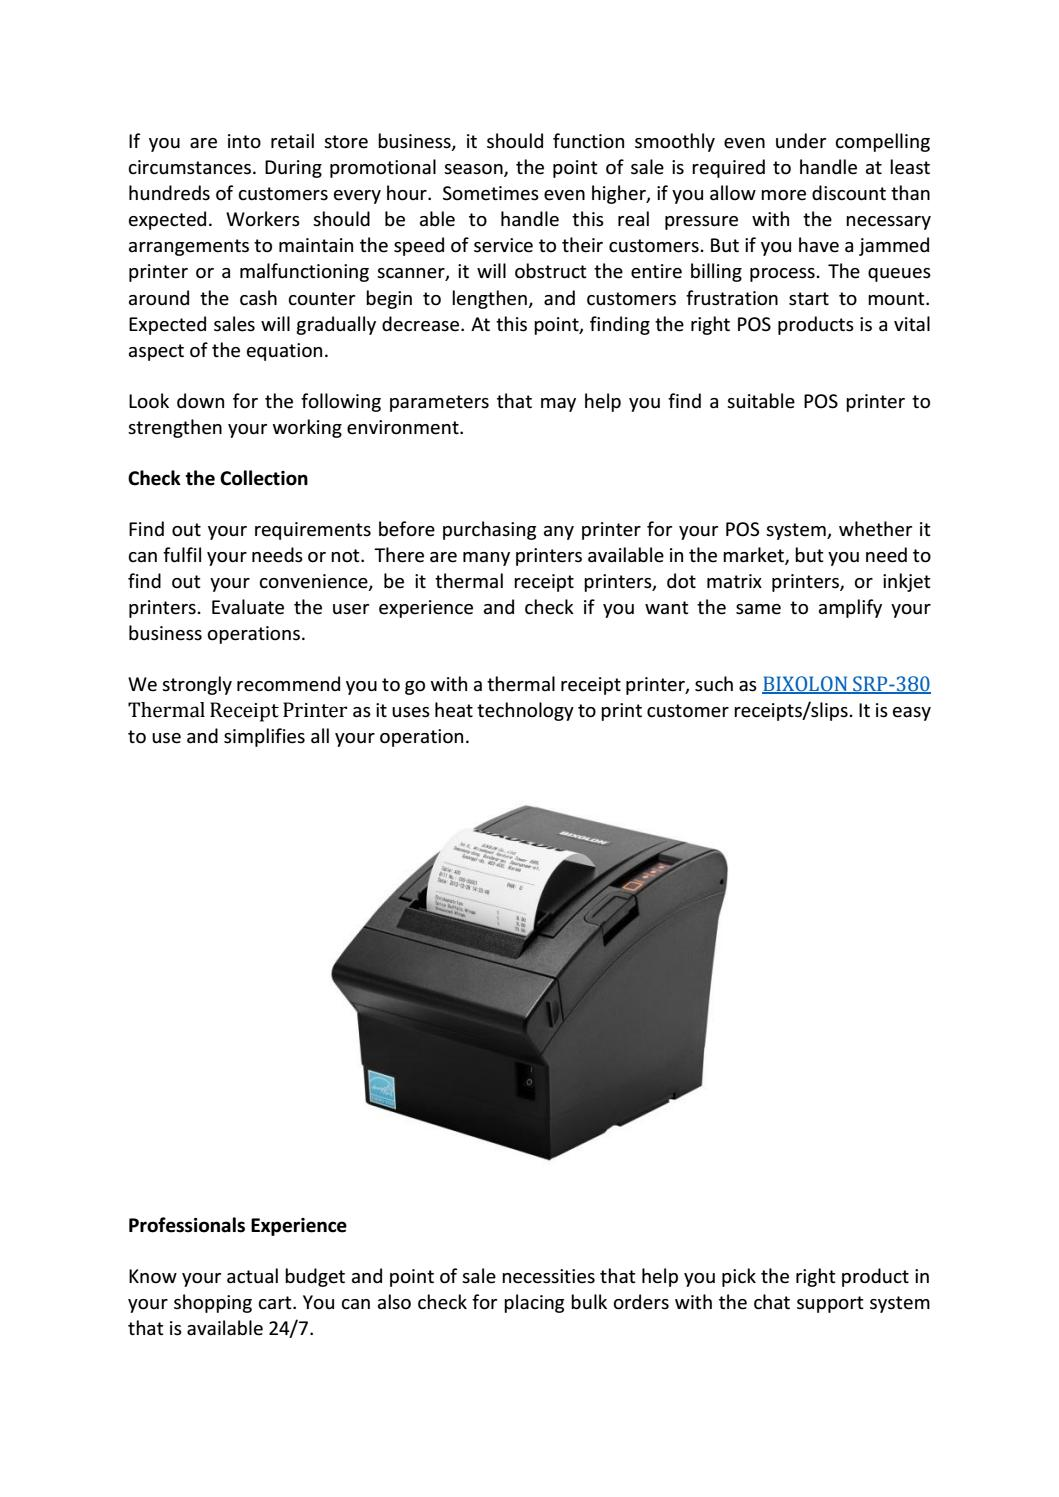 BIXOLON SRP-380 Thermal Receipt Printers – For Business